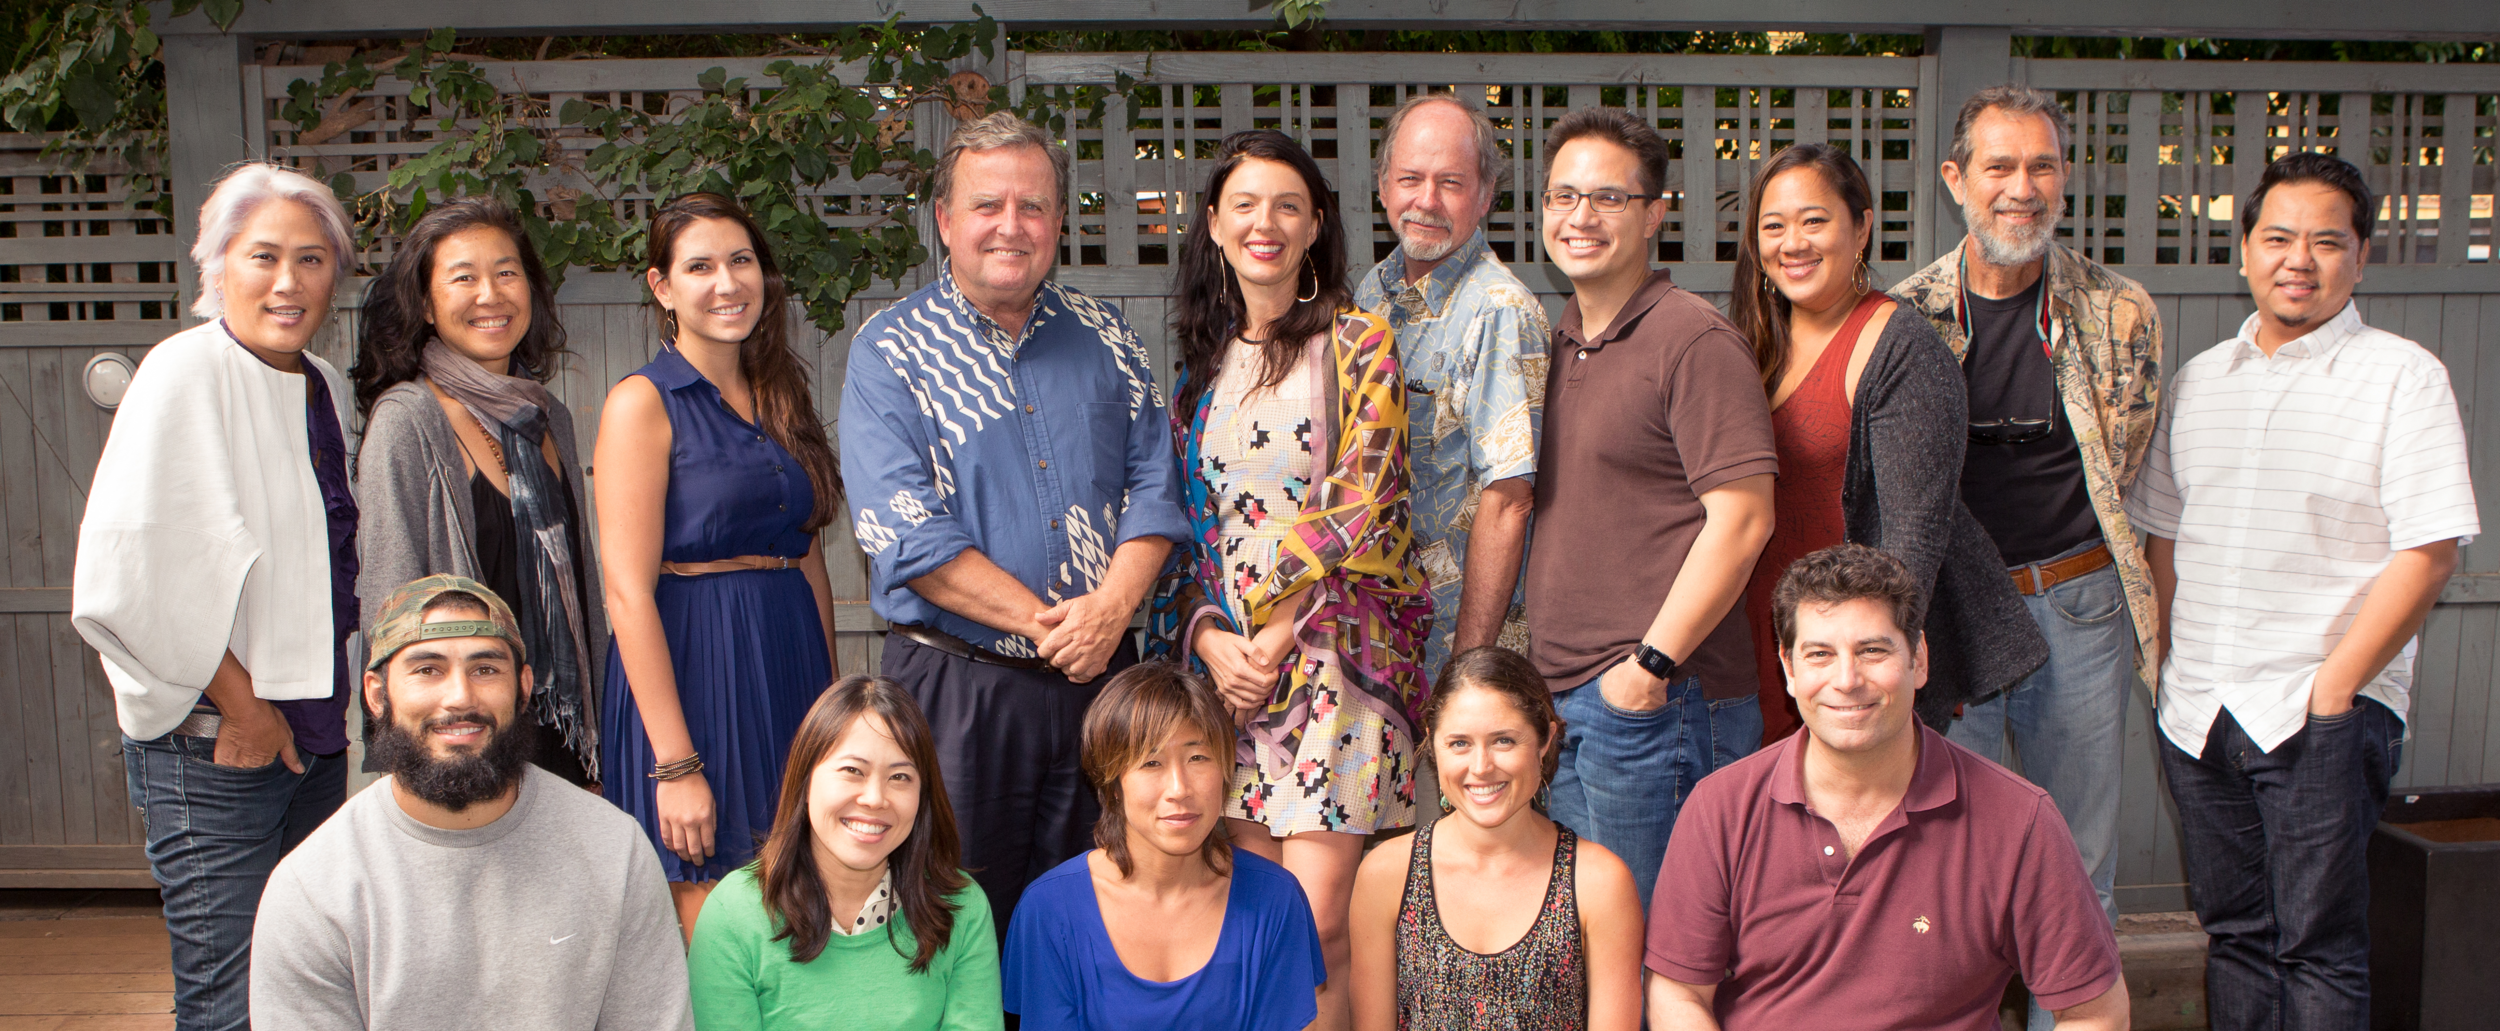 HAPA Board Members, December 2014.  Missing from photo are new Members, Leslie Malulani Miki, Kaleikoa Kaʻeo, Michael Miranda, and Pualiʻiliʻimaikalani Rossi-Fukino. Included are also in this photo are former board members, Joshua Mori, Katie McMillan, Bianca Isaki and Mālia Chun.   Photo: Courtesy of Natalie Brown Photography.